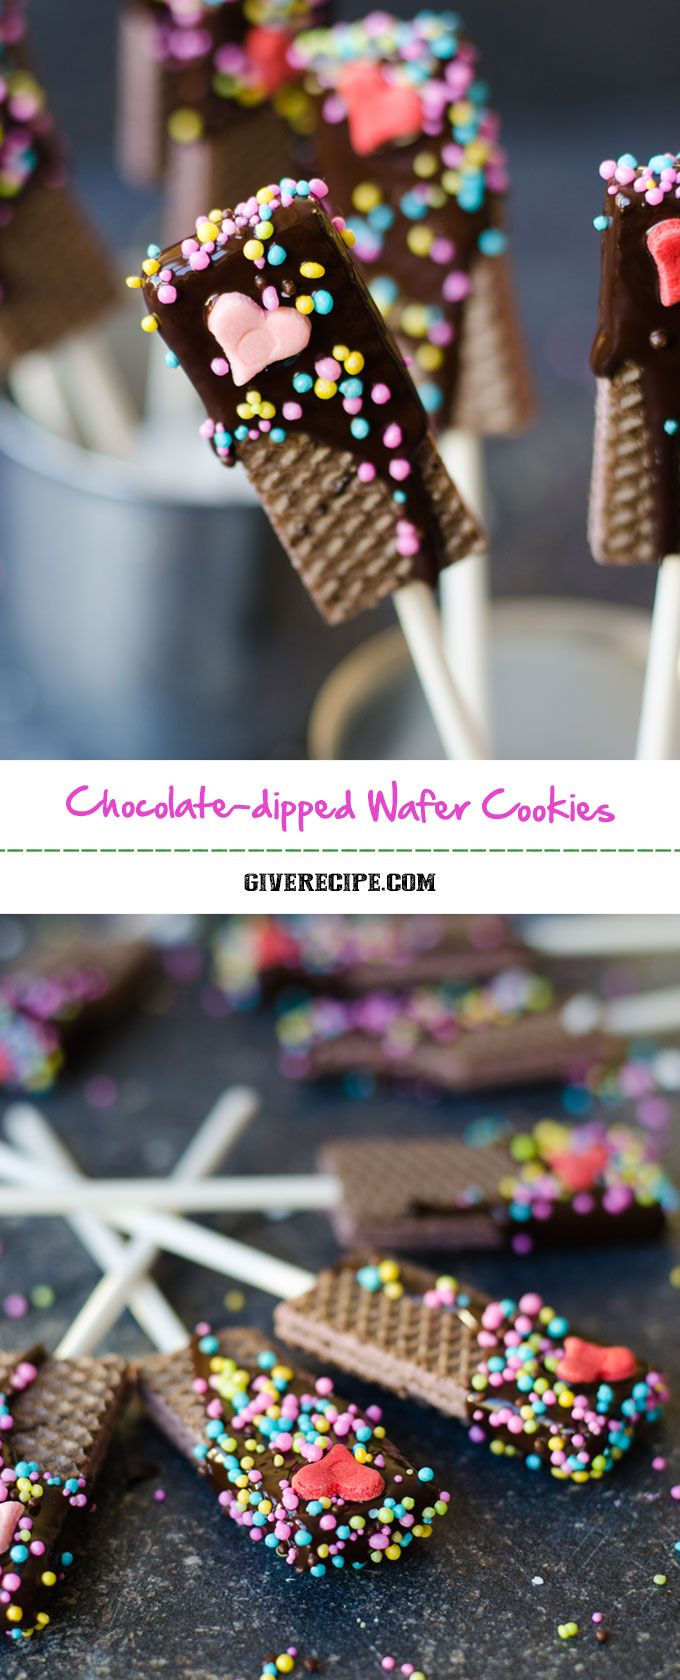 Chocolate Dipped Wafer Cookies are the easiest, cheapest, cutest and yummiest treats for special occasions like Valentine's Day. | giverecipe.com | #valentinesday #wafers